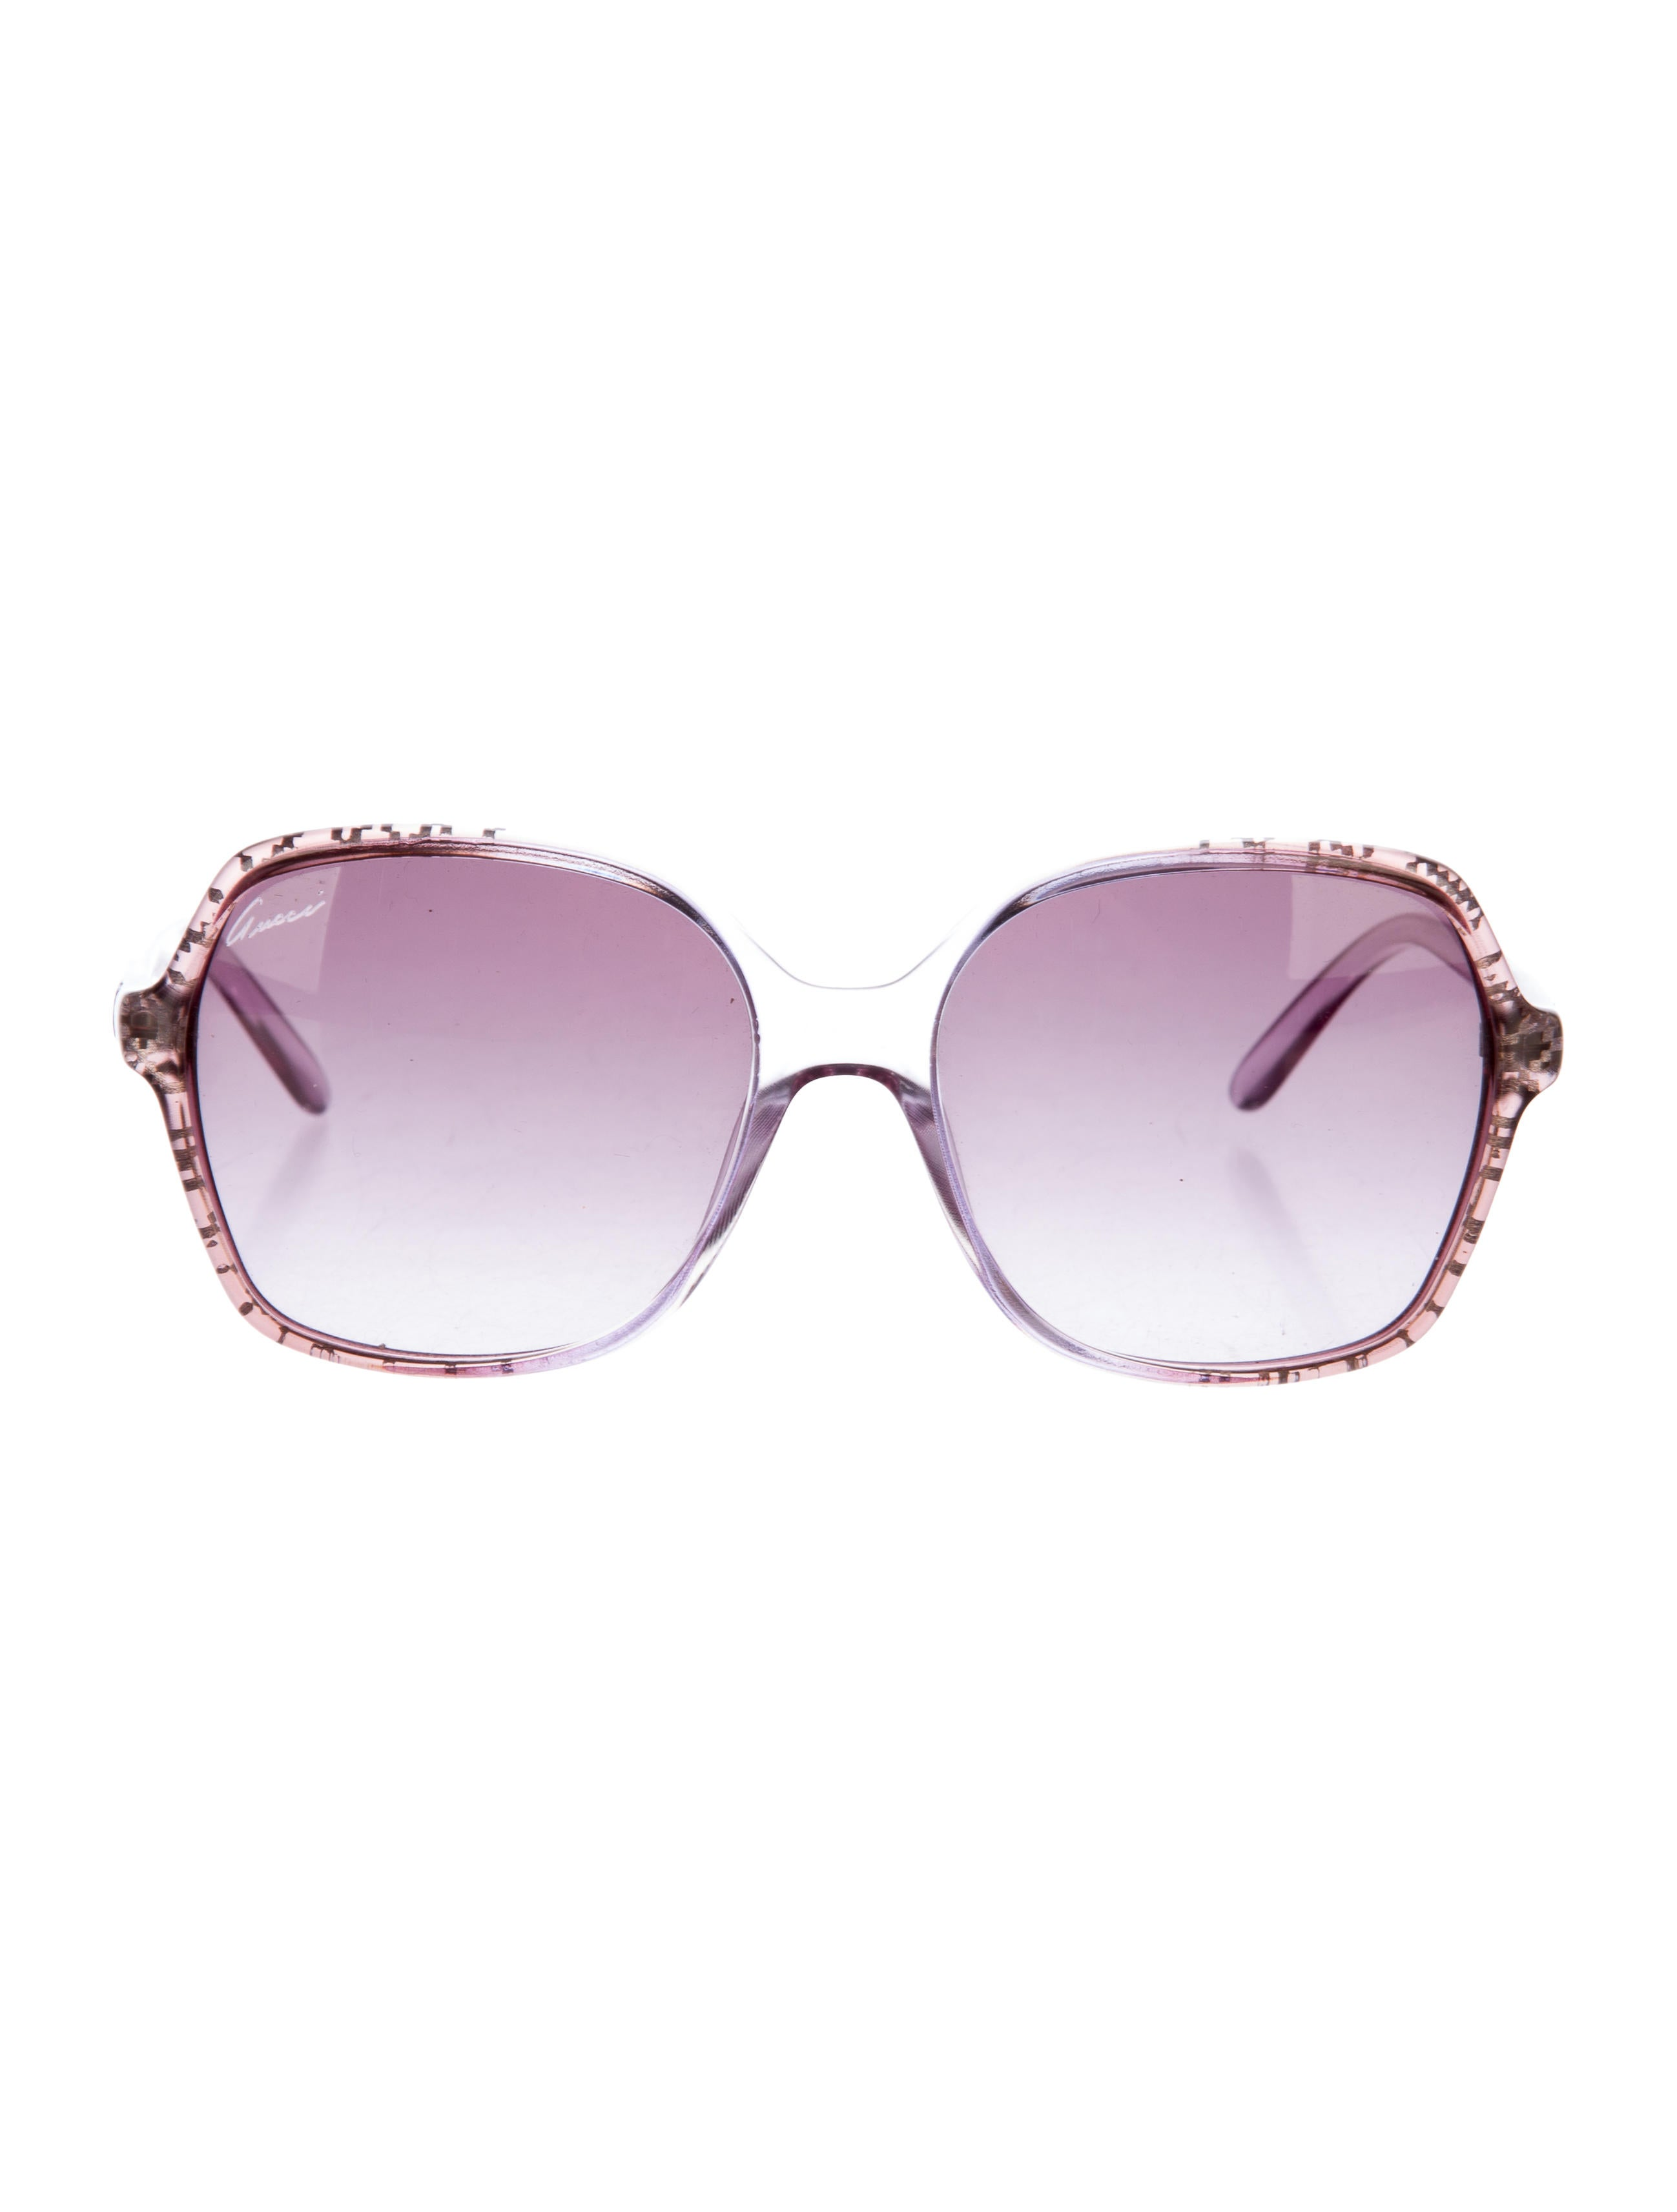 21d93e7b06053 Gucci Gradient Butterfly Sunglasses - Accessories - GUC138084